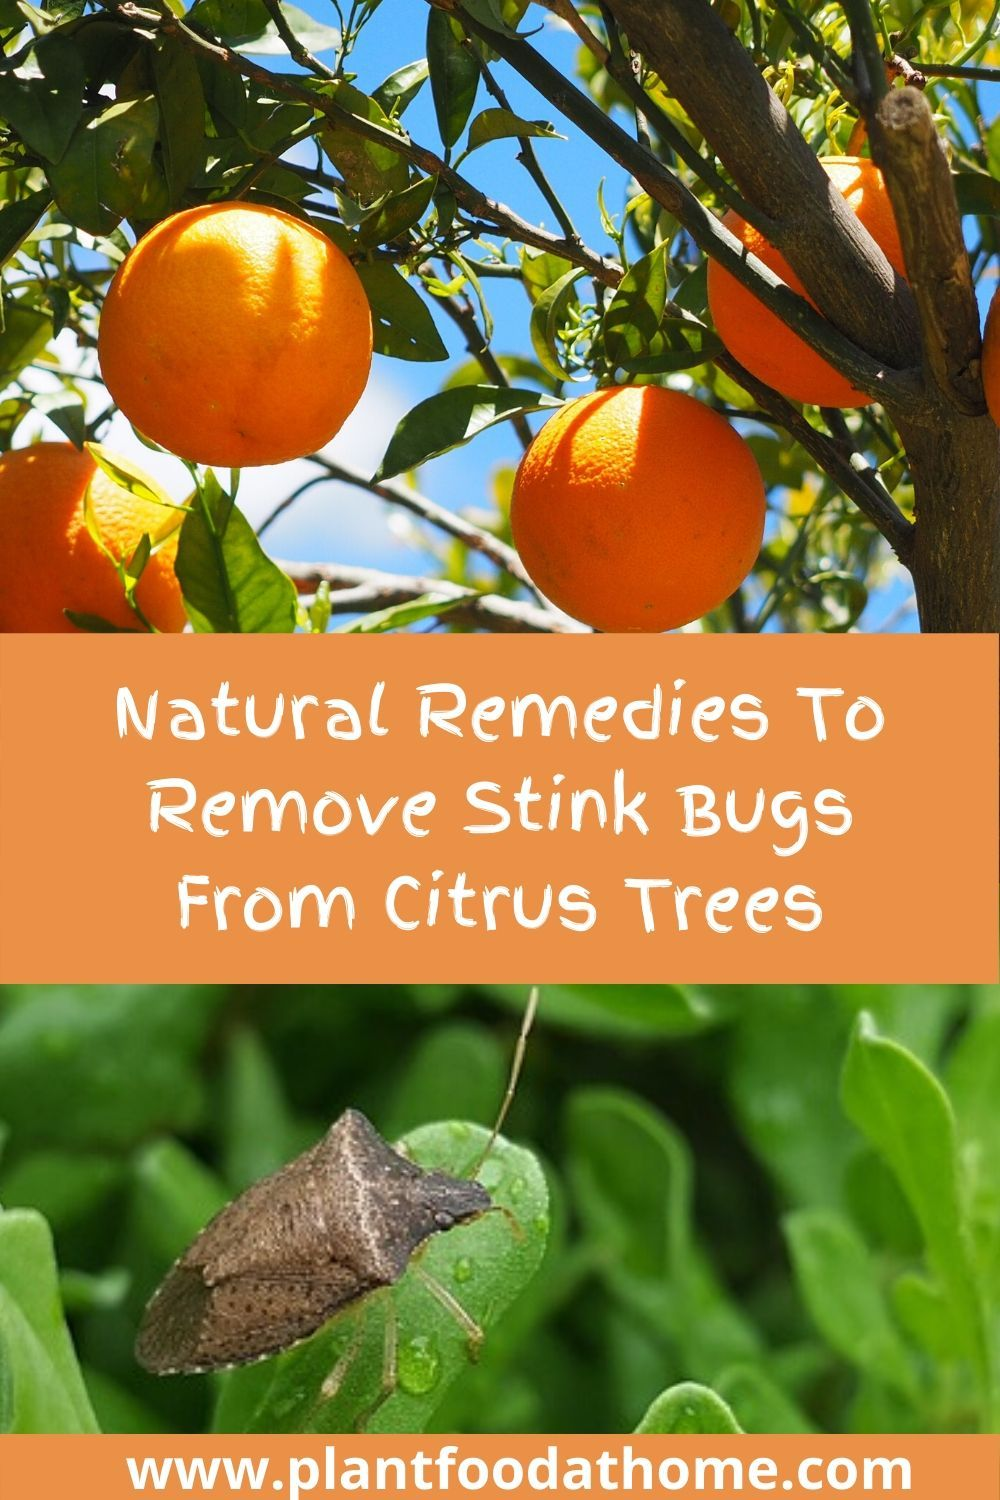 Natural Remedies To Remove Stink Bugs From Citrus Trees Citrus Trees Stink Bugs Citrus